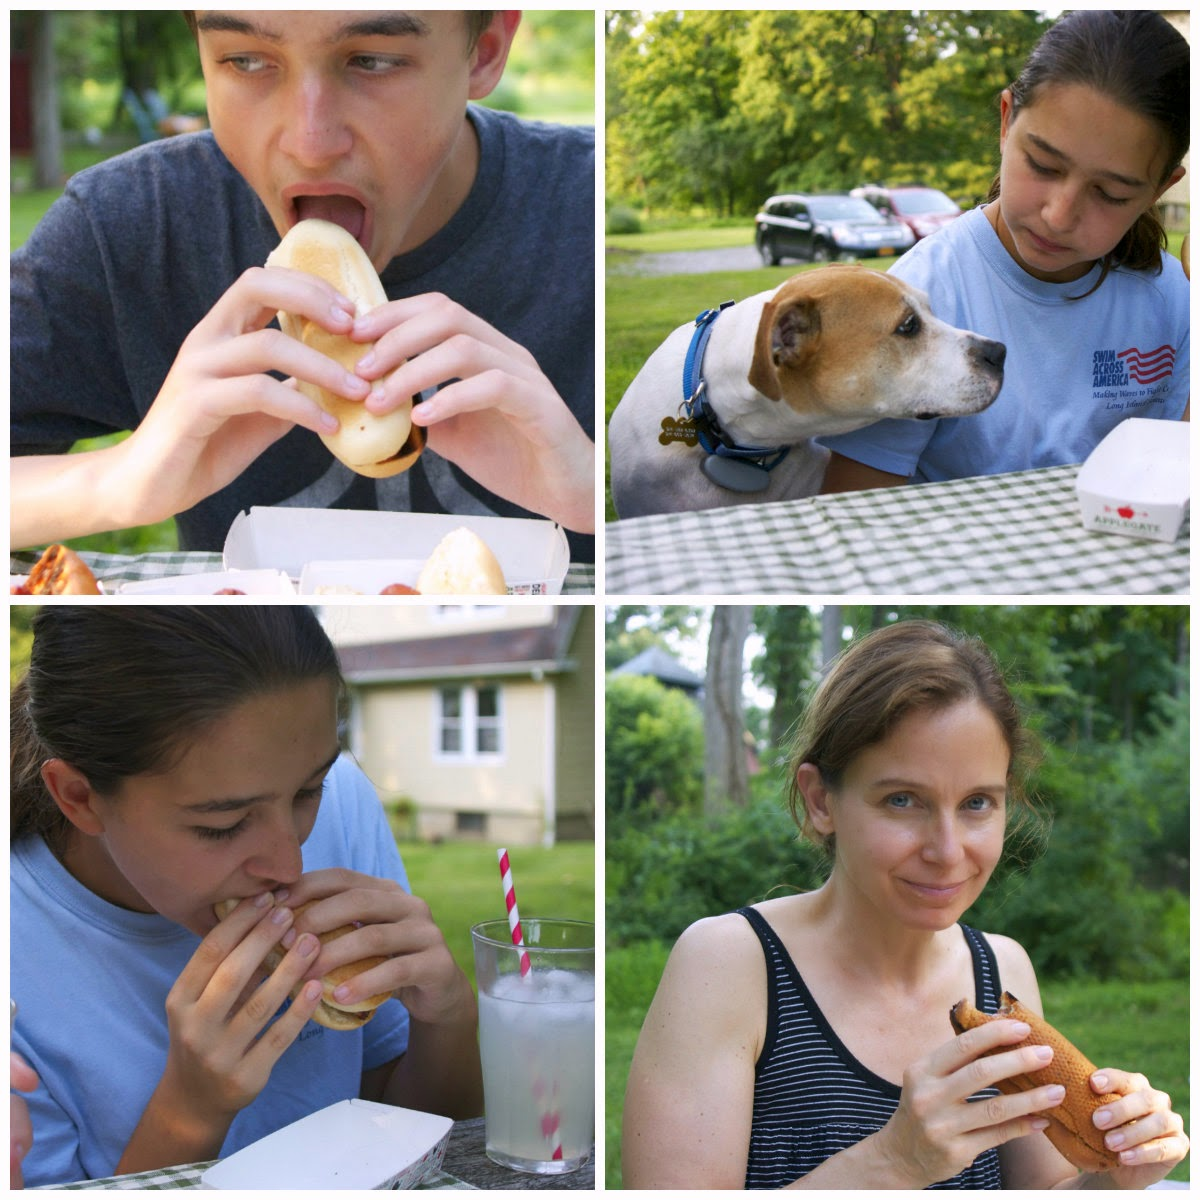 eating hot dogs collage: simplelivingeating.com